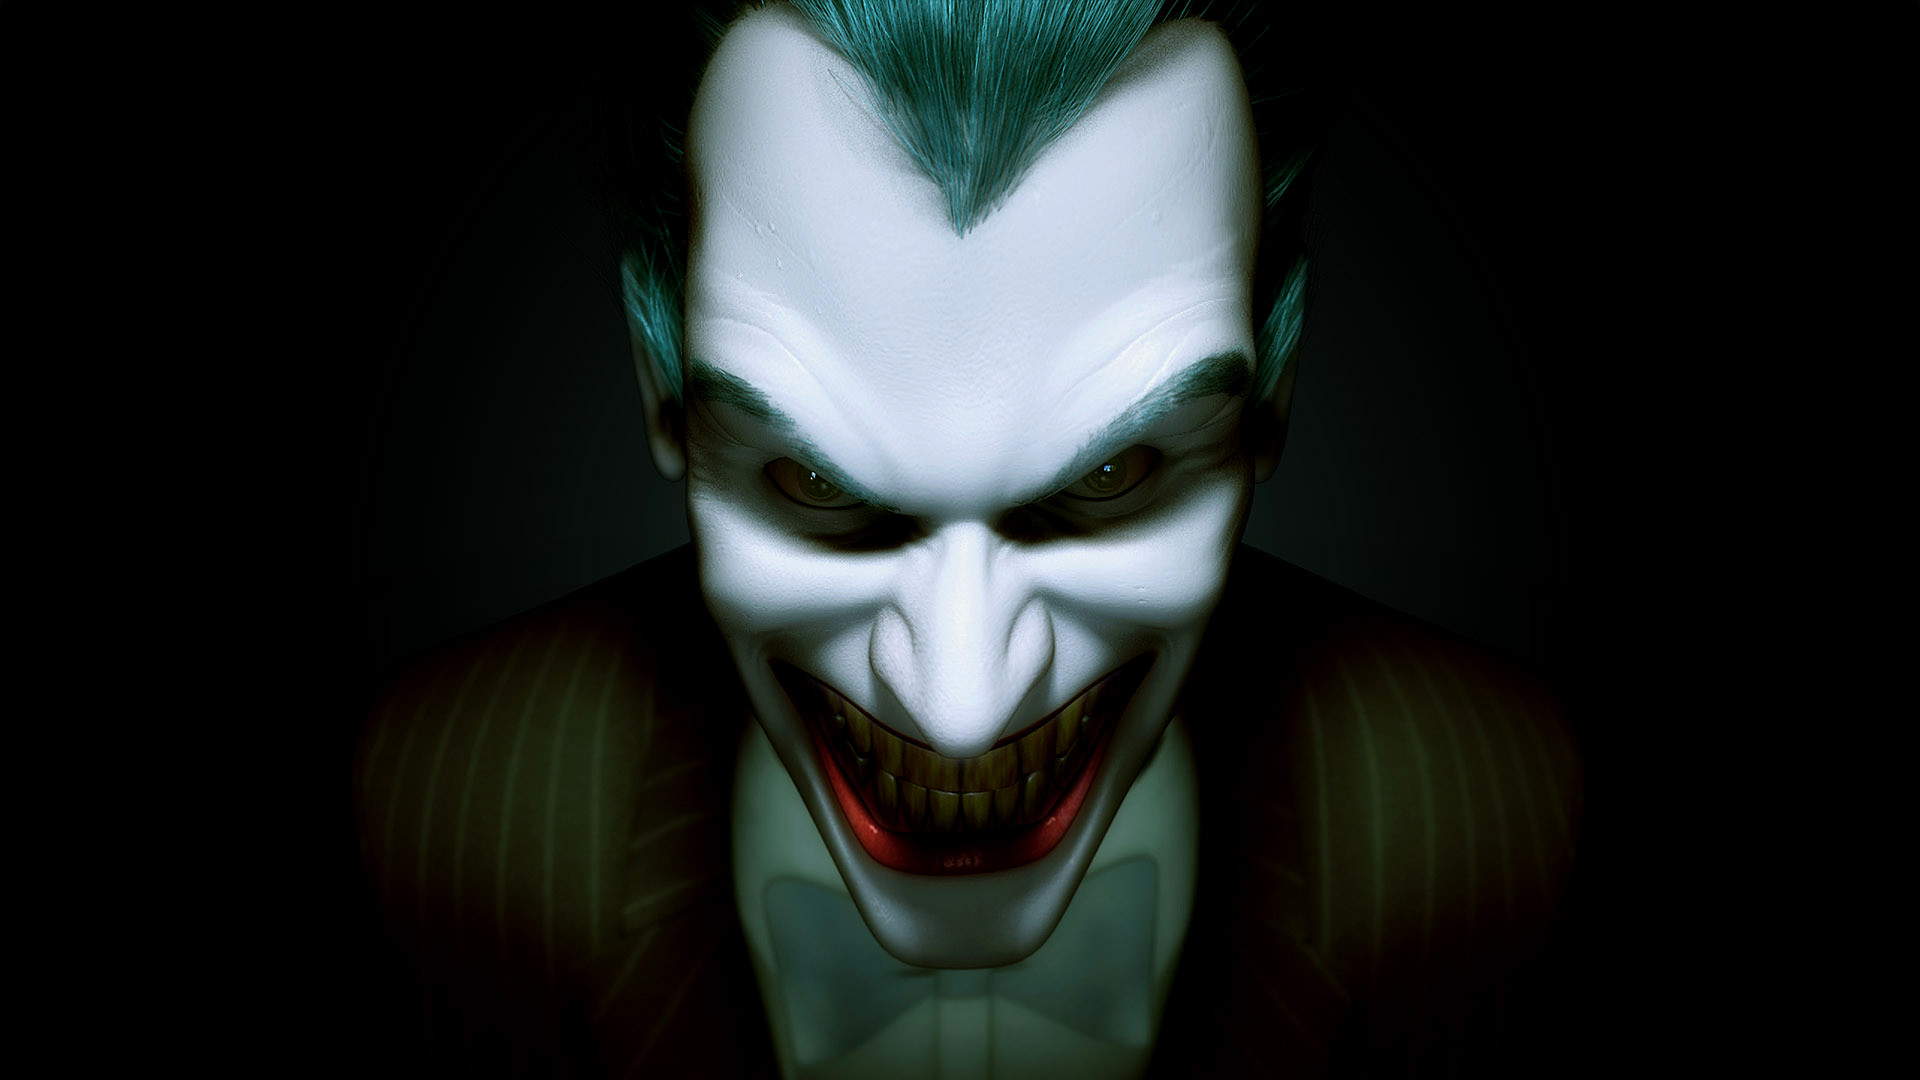 1920x1080 Joker HD Wallpapers Backgrounds Wallpaper 1920A 1080 The 54